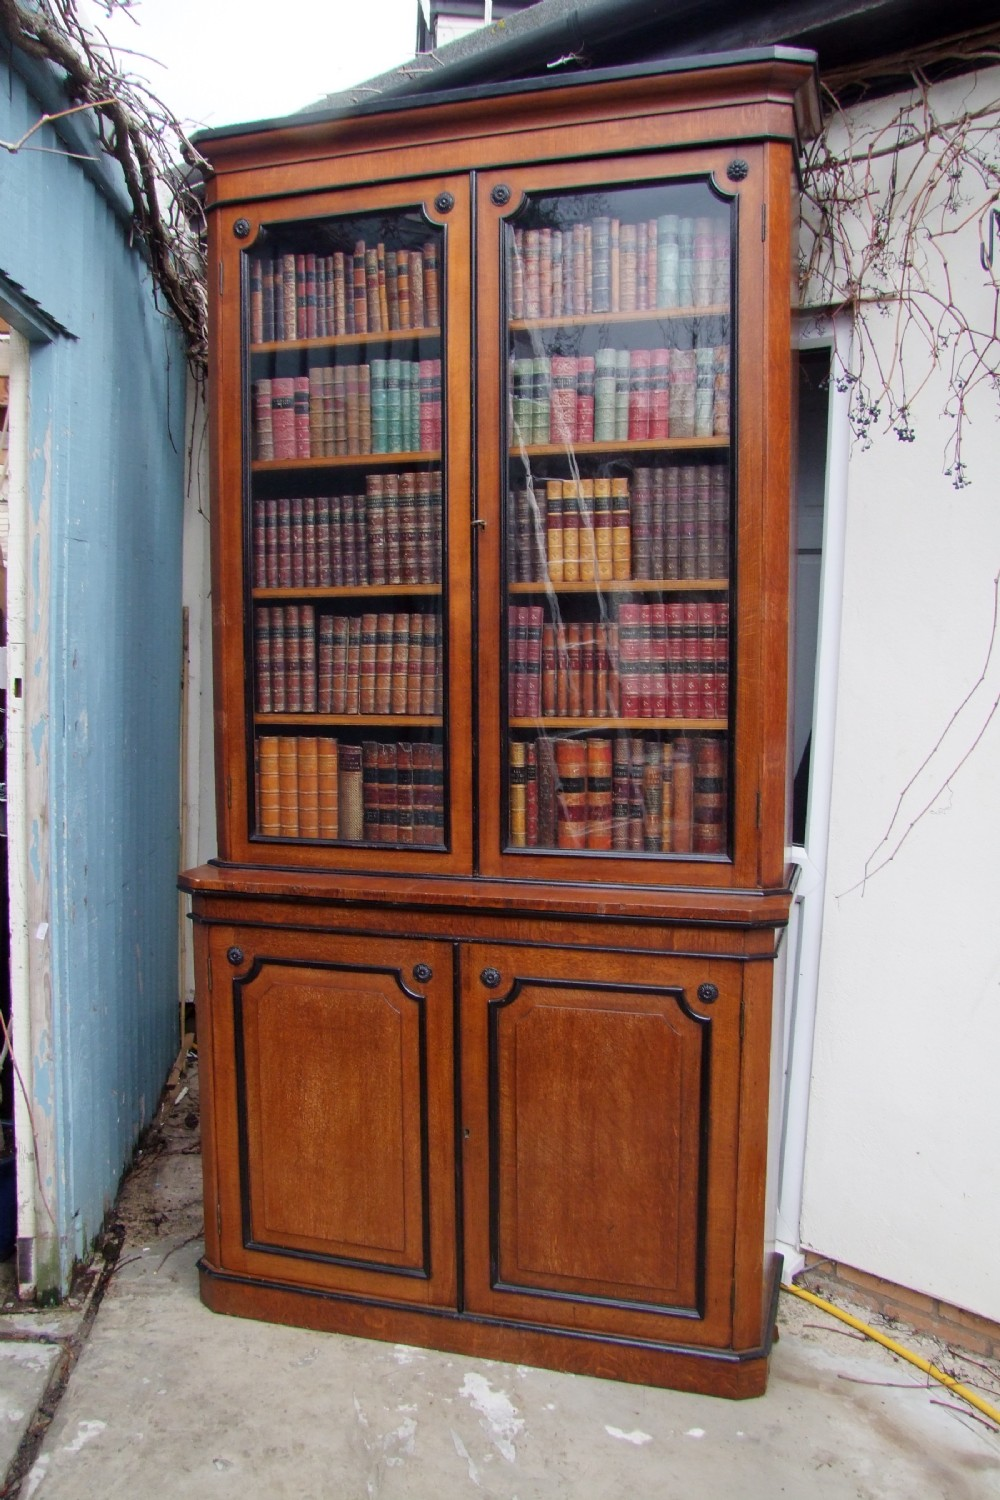 19th century golden oak library bookcase with ebonised detail